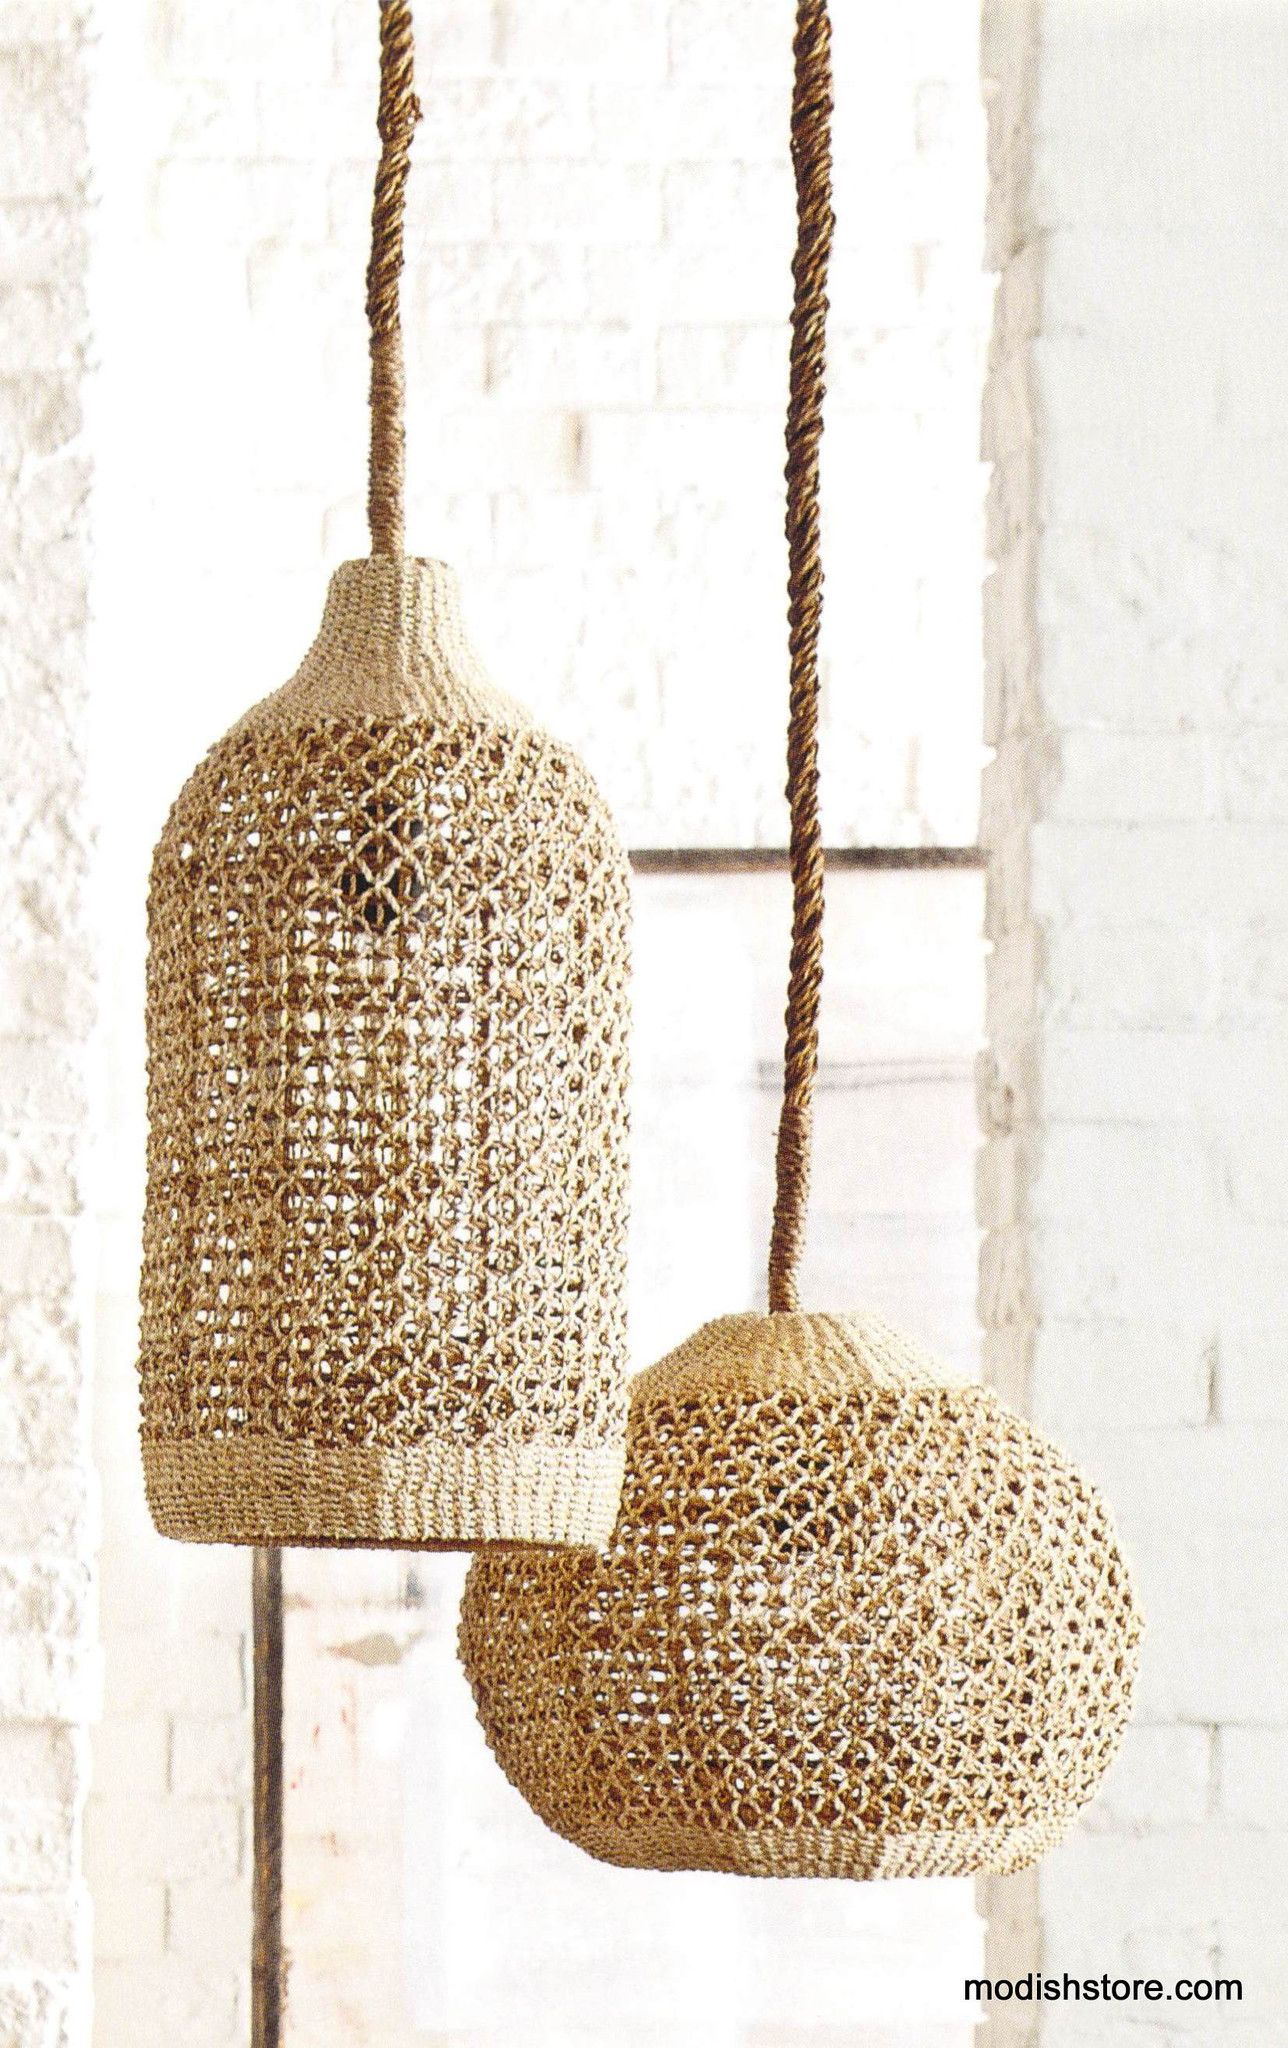 Airy Pendant Lamps Made From Delicate Split Rattan With Creamy White Interior Cylinder Shade Providing Lovely Diffused Light Includes A 15 Foot